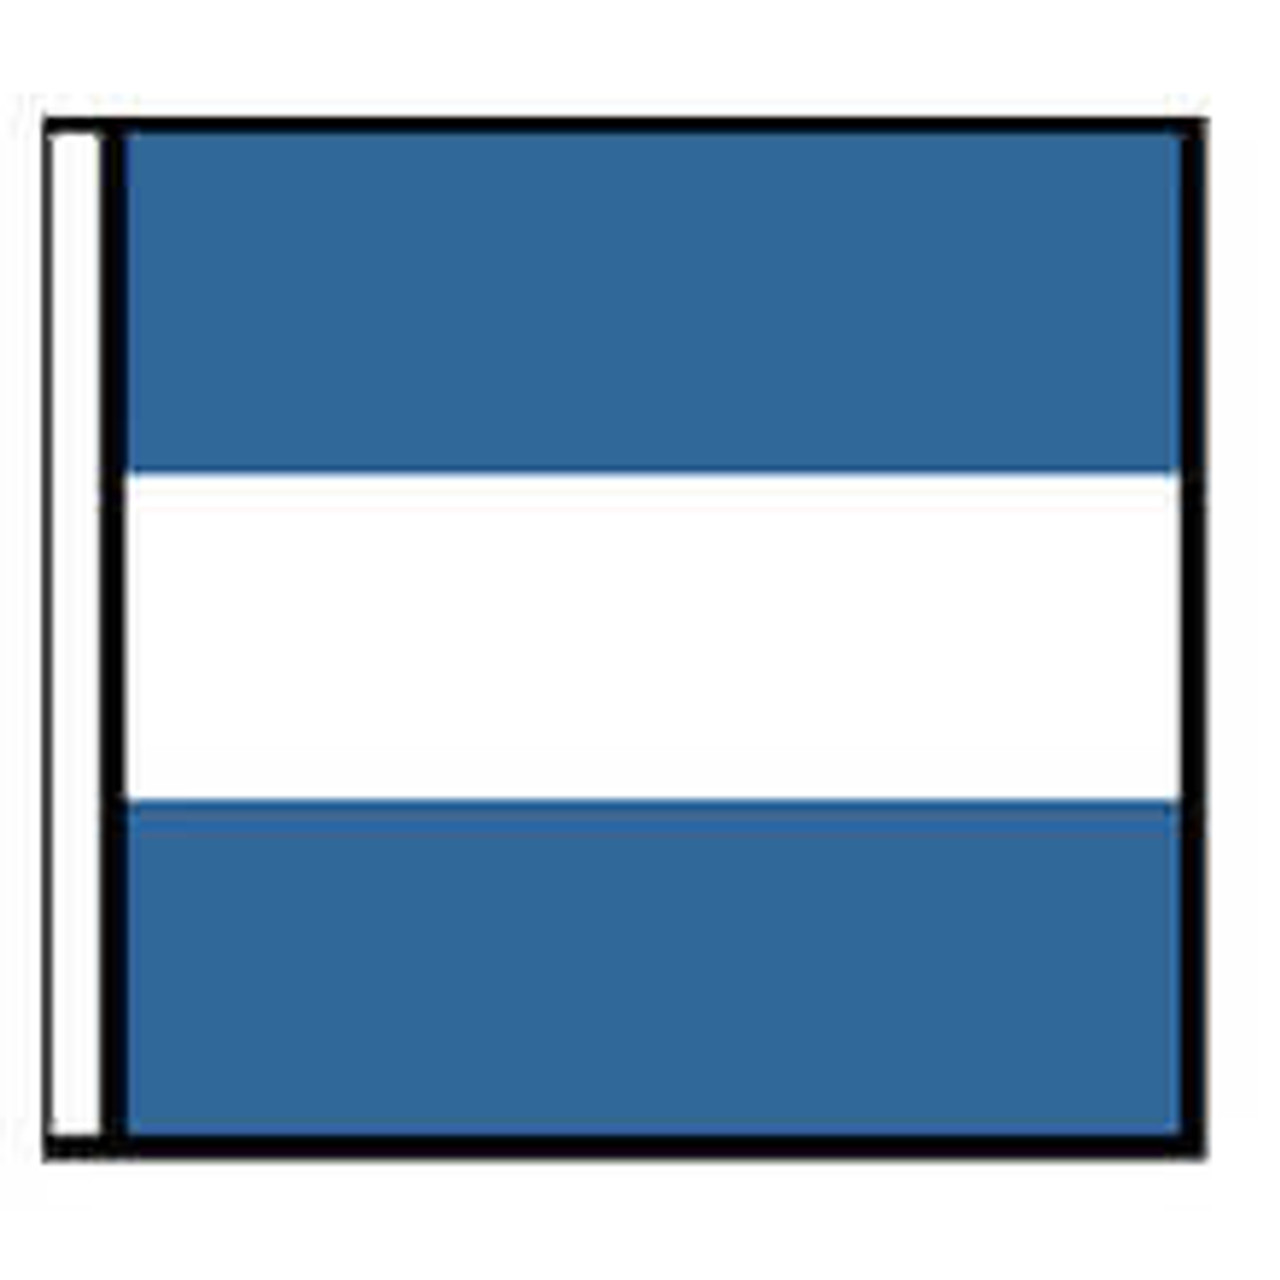 A illustration of a flag with a blue background and a wide horizontal white stripe.